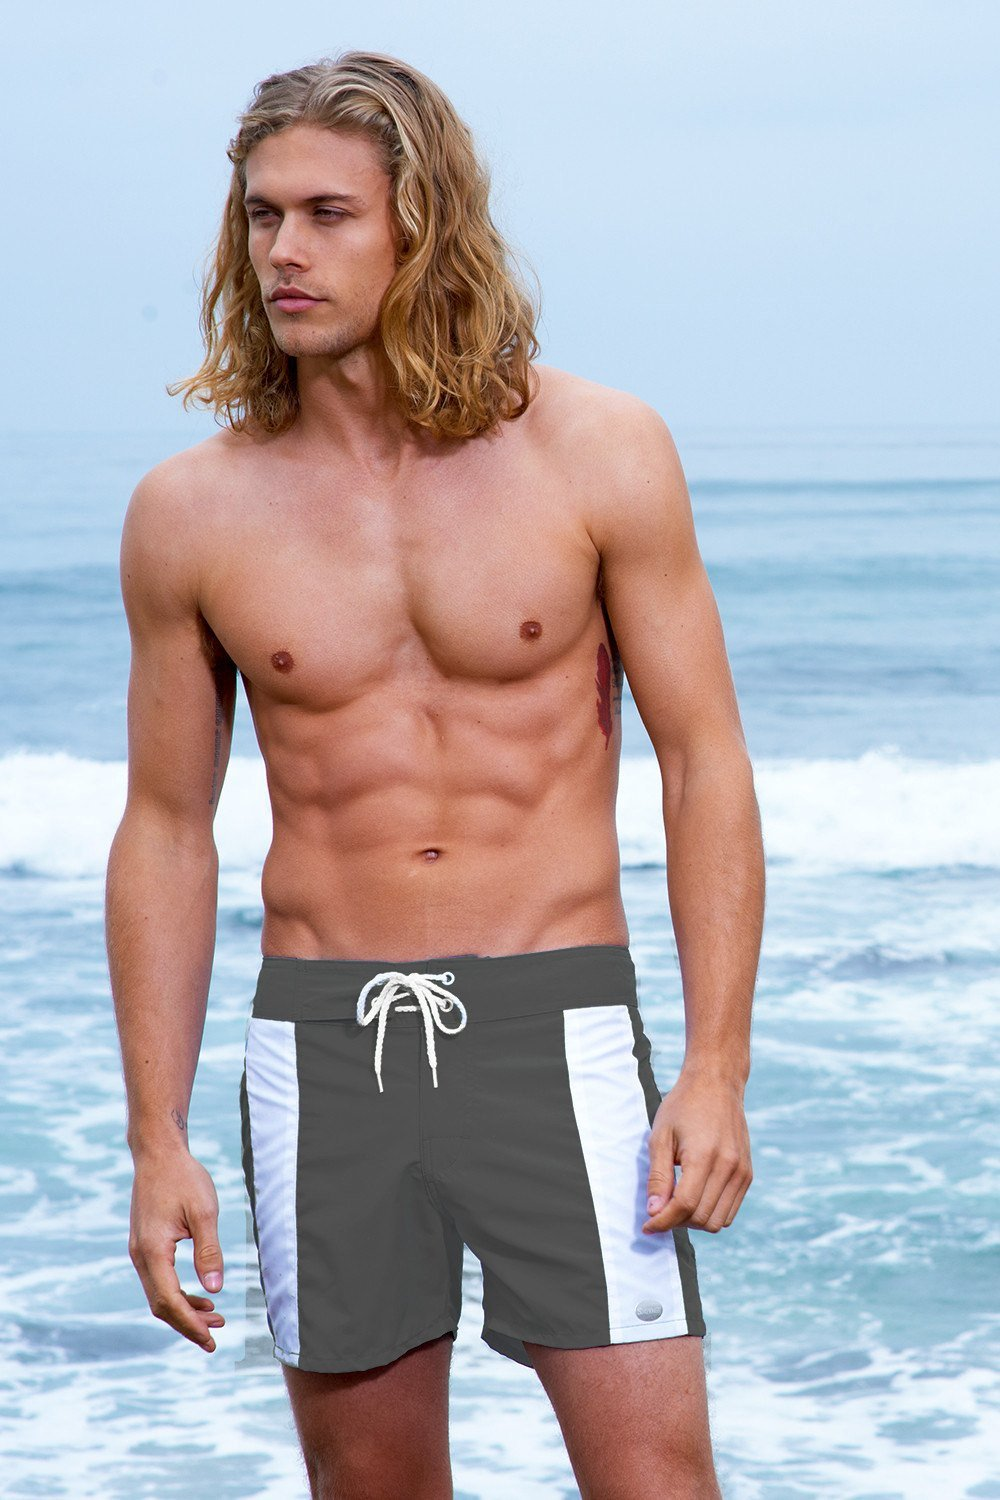 Sauvage Swimwear, Designer Swimwear from San Diego, CA made in usaBoardwalk Surf Short, Small - 30 / Charcoal/White, Mens Swim, Men's Swim, Sauvage - 1